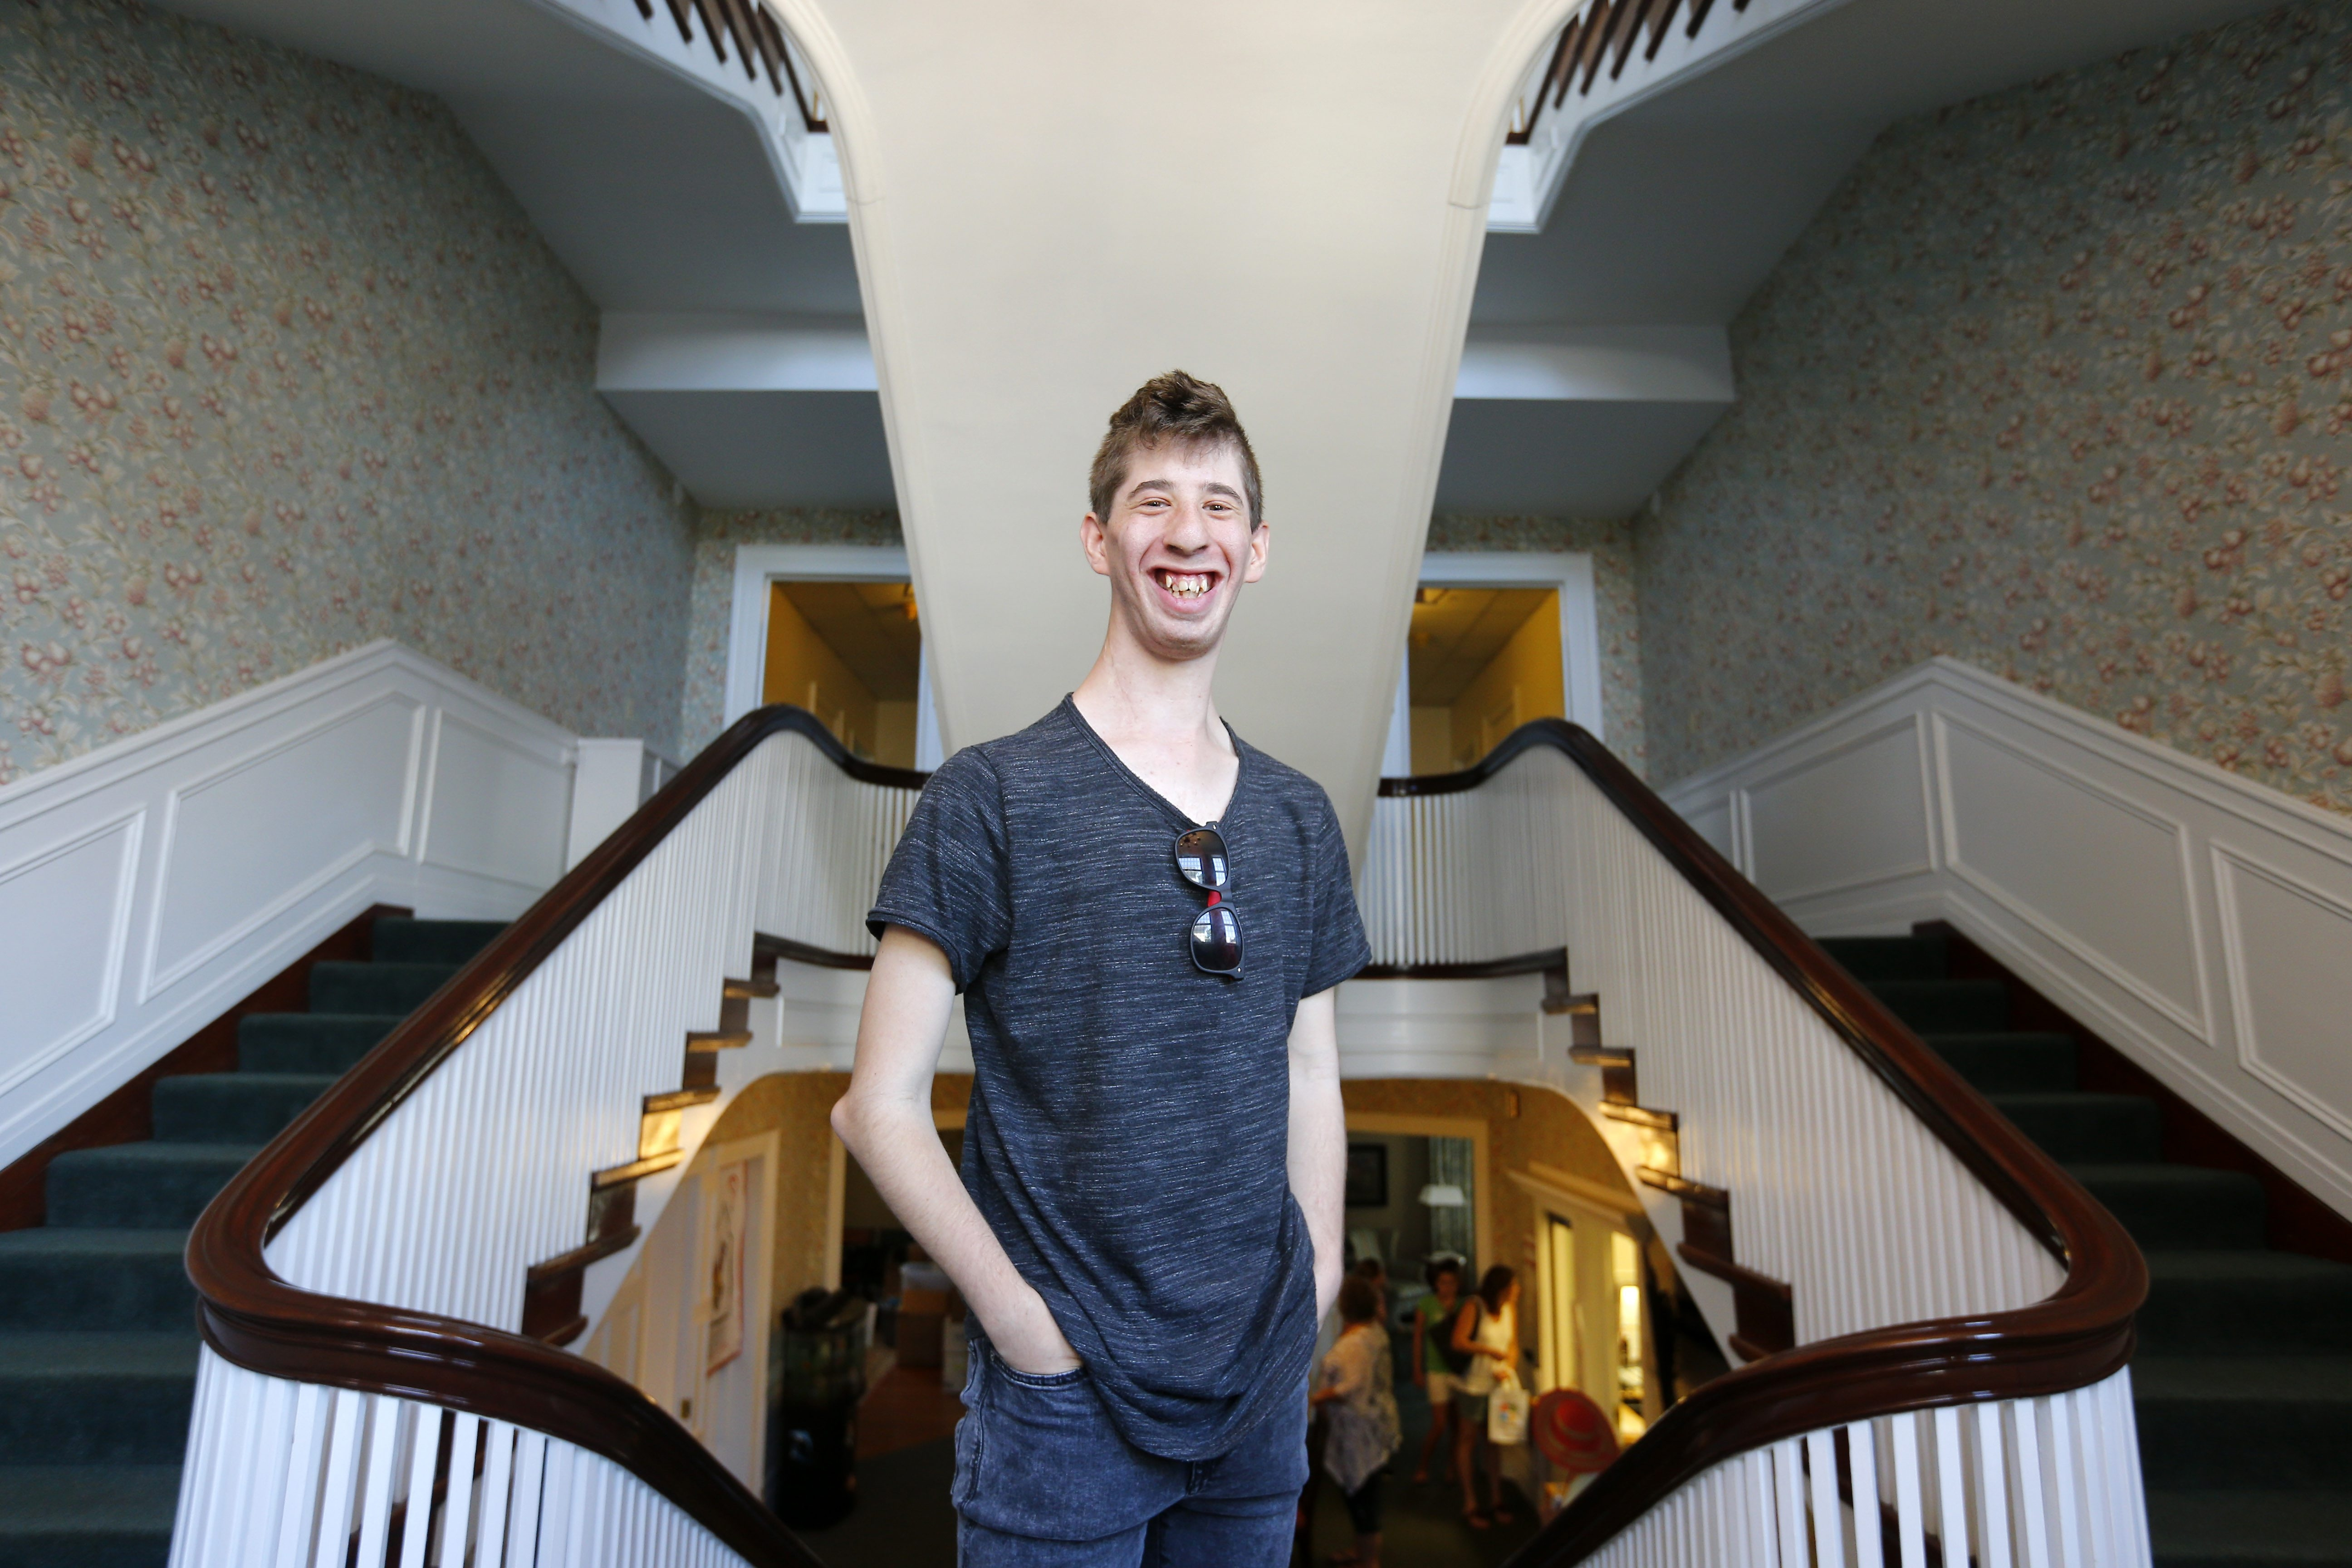 Evan Kentile, now 21, shown Wednesday at Ronald McDonald House, will shoot the starting pistol for the residence's 15th annual 5K race.